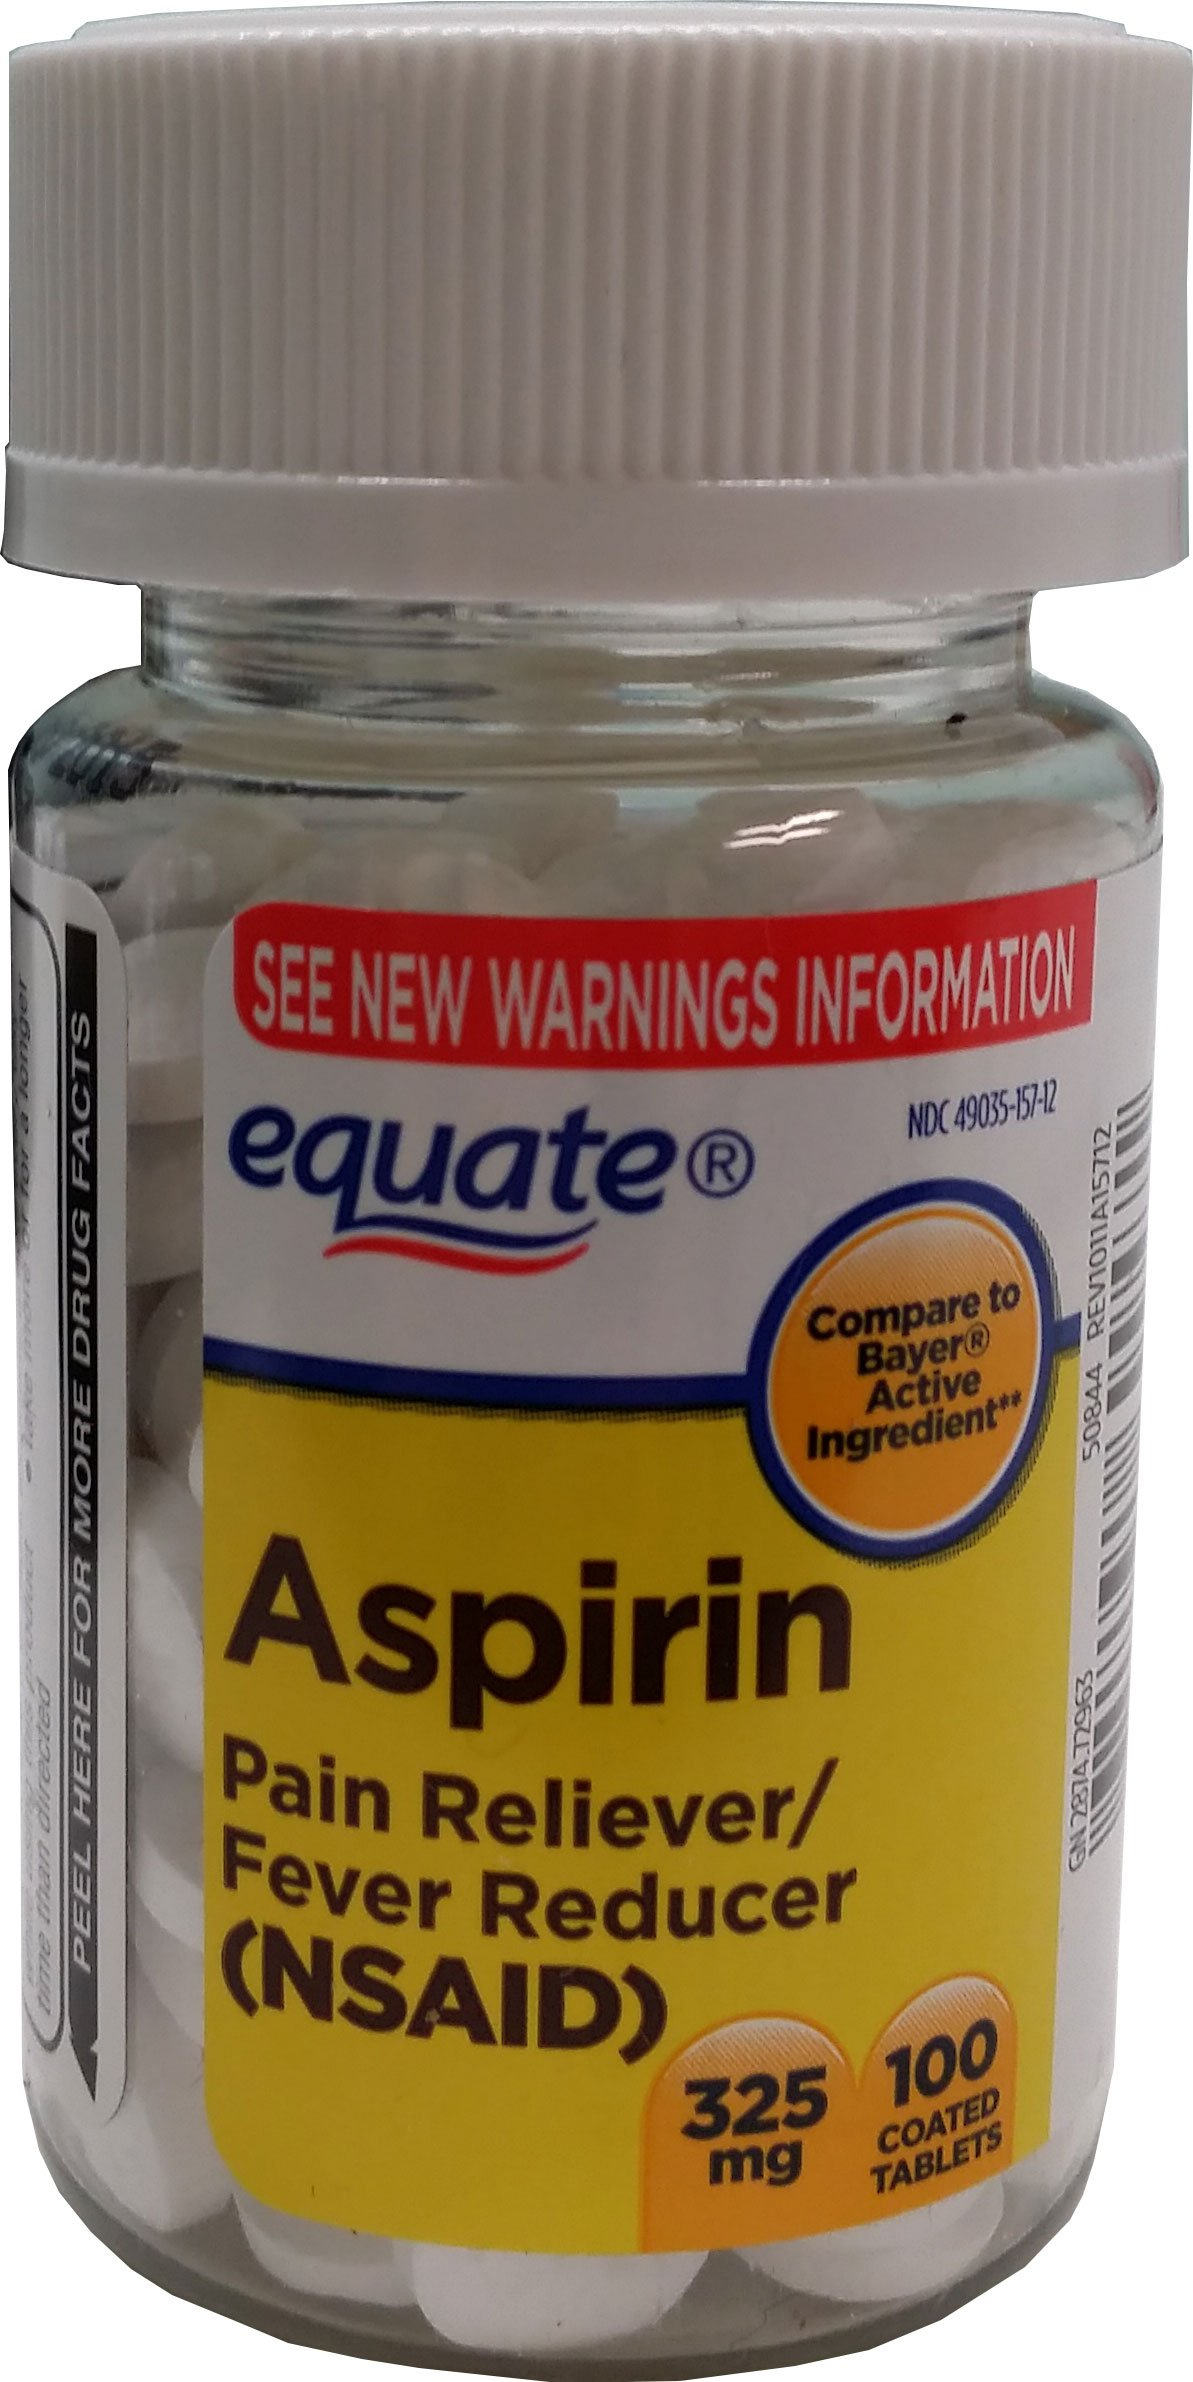 Equate Aspirin Tablets 325 Mg Pain Reliever/Fever Reducer 100 Ct